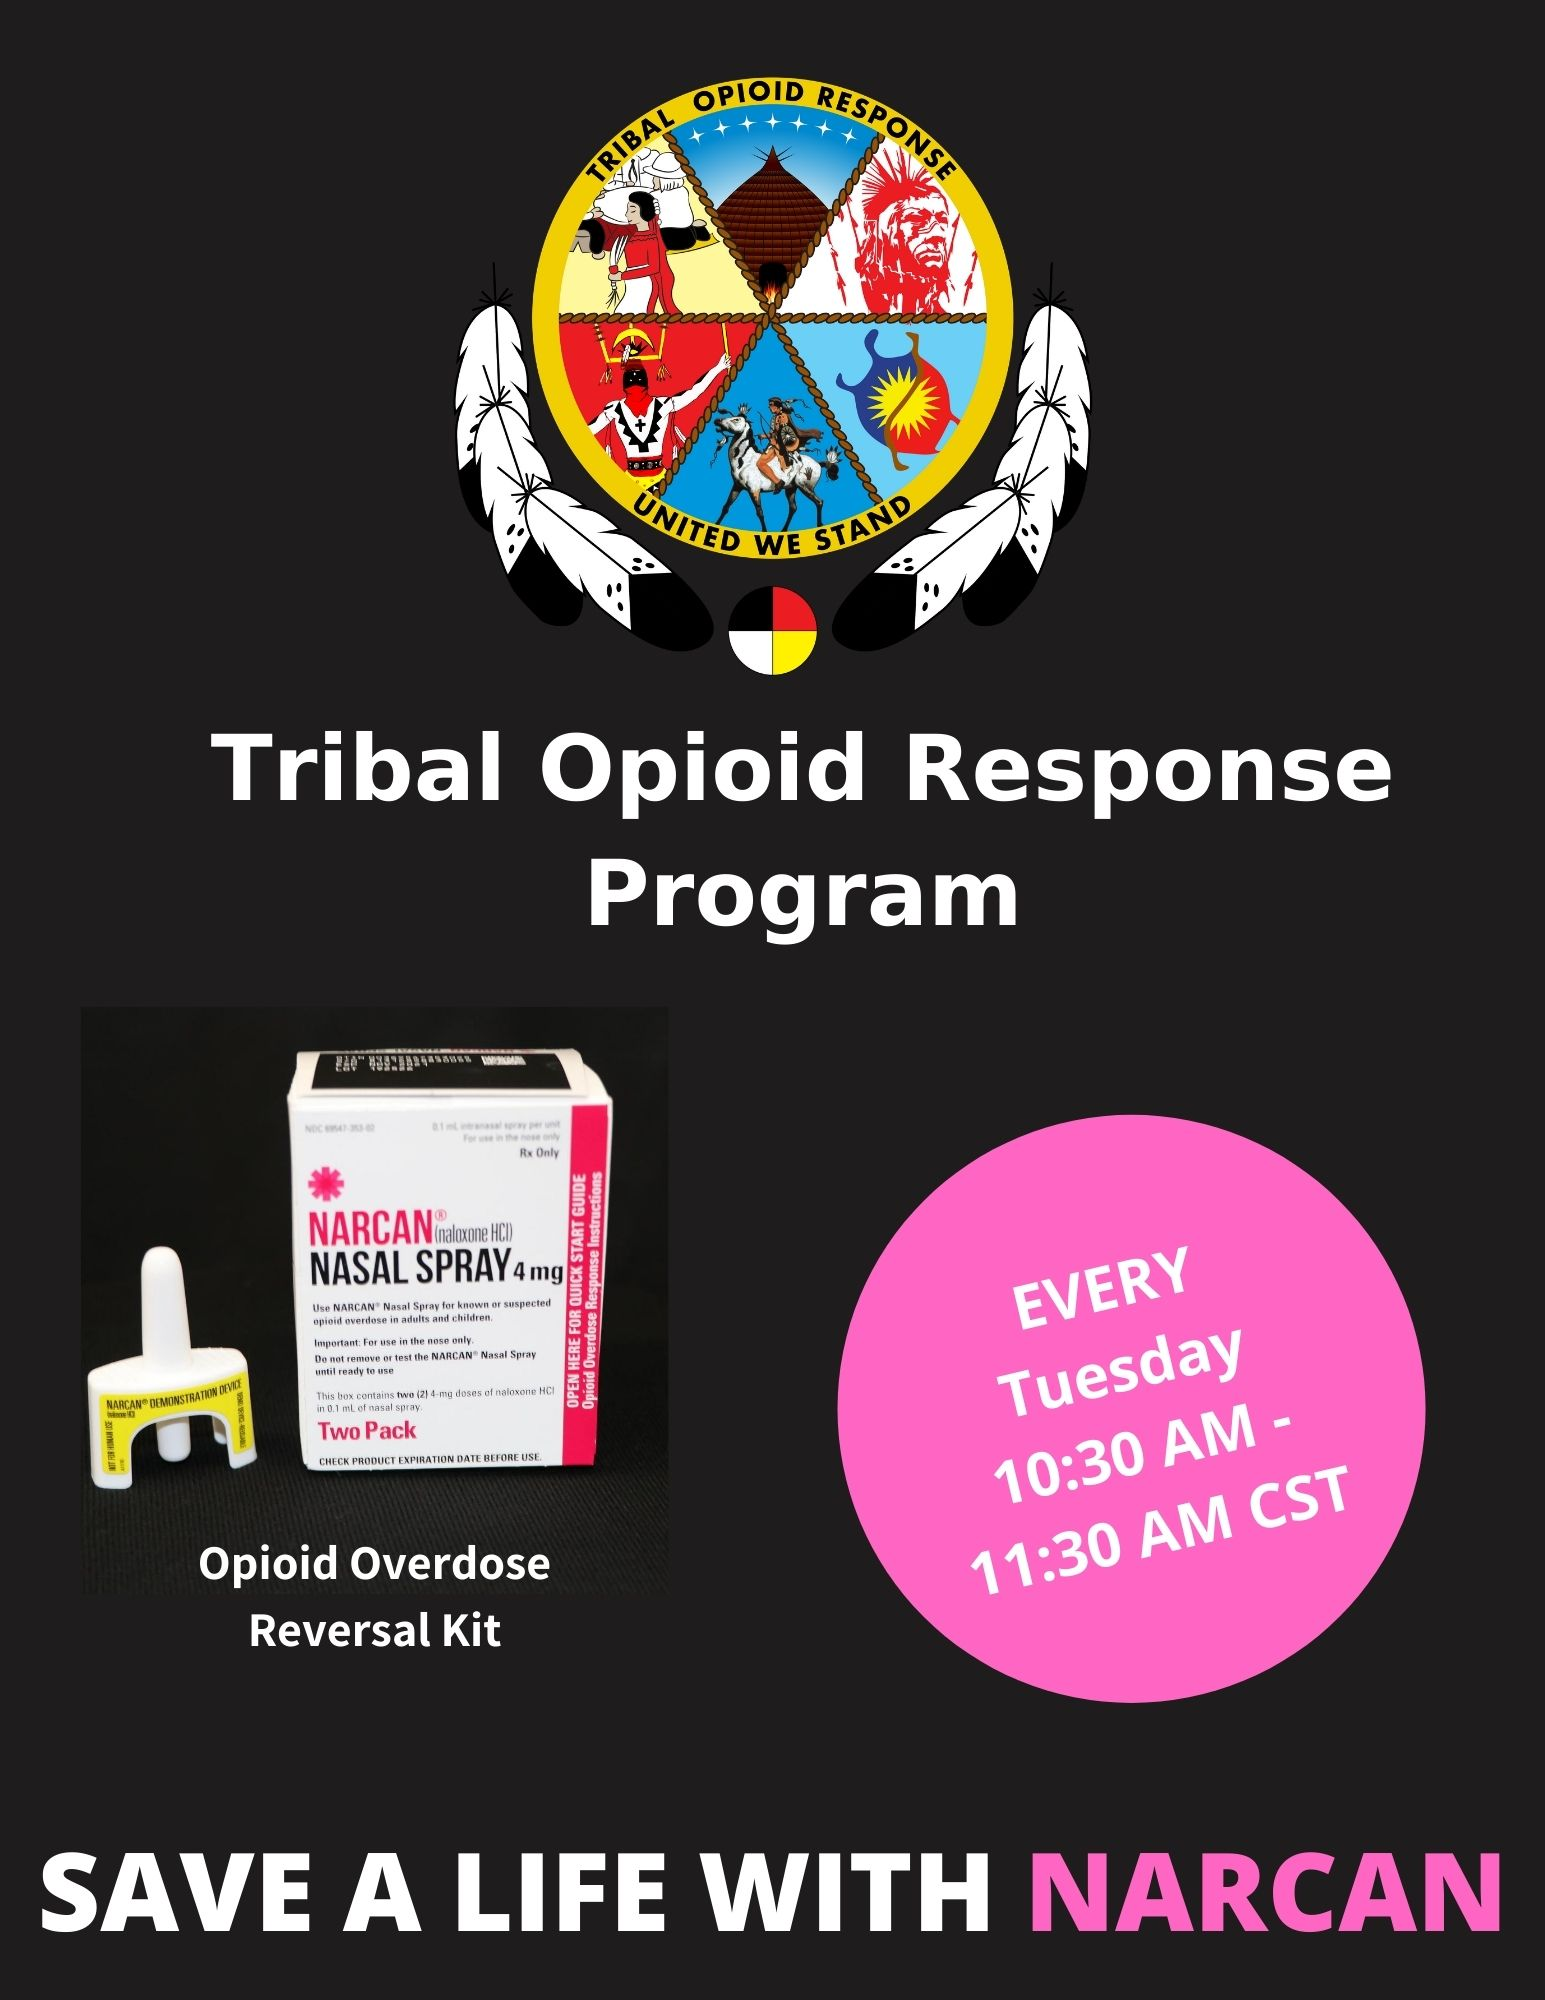 Tribal Opioid Response Program